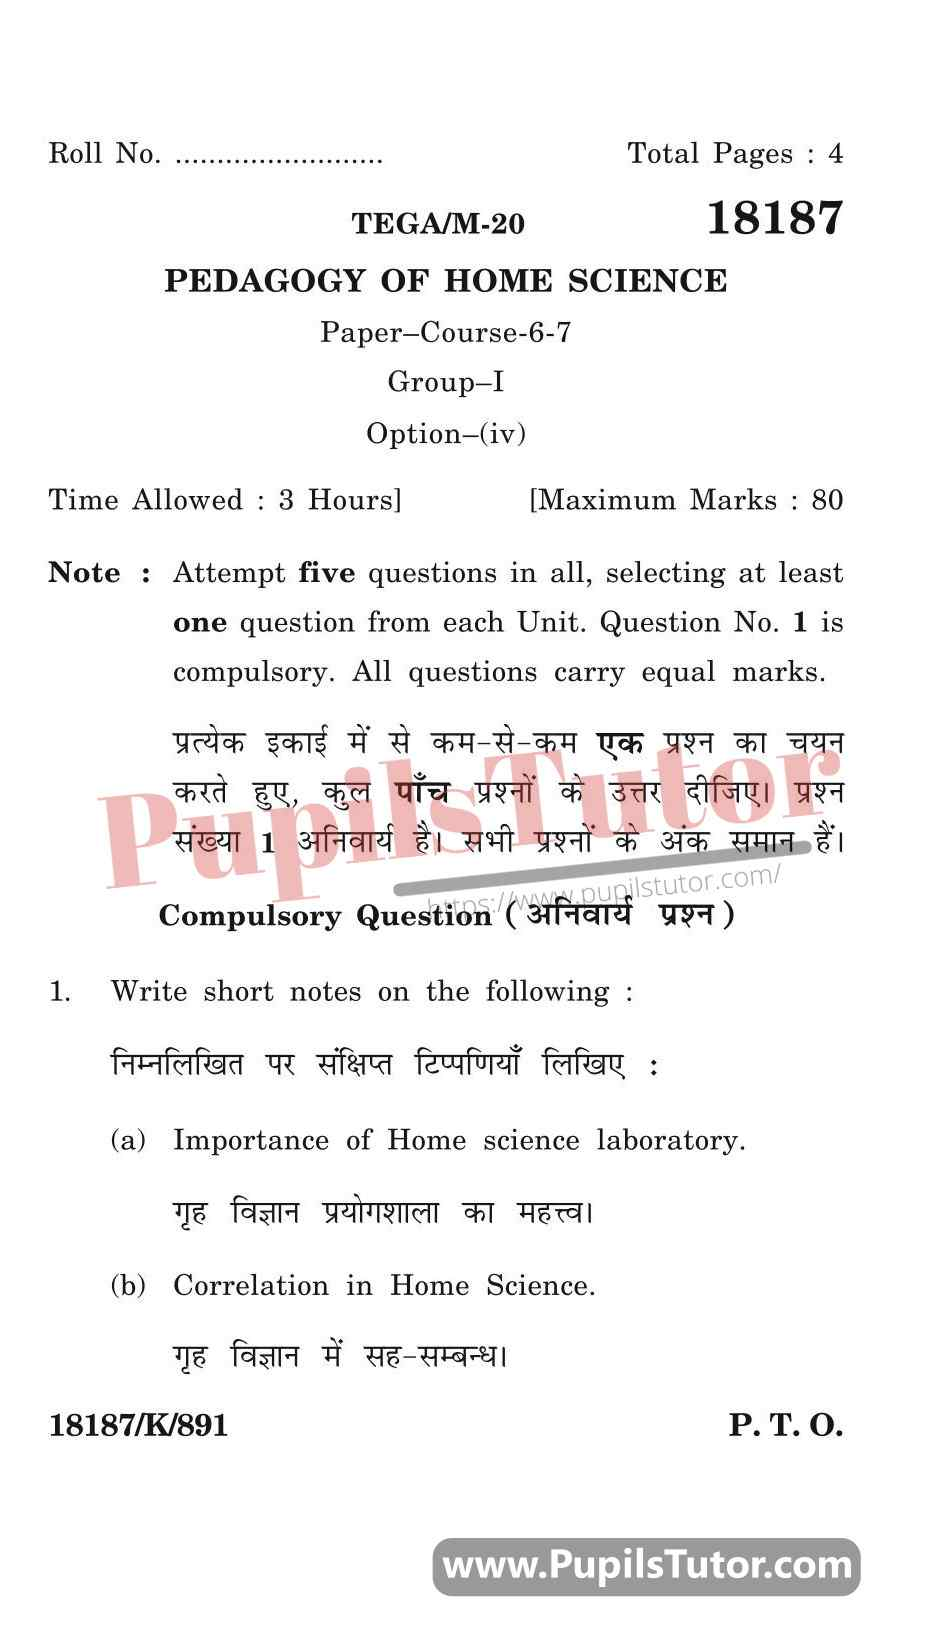 KUK (Kurukshetra University, Haryana) Pedagogy Of Home Science Question Paper 2020 For B.Ed 1st And 2nd Year And All The 4 Semesters In English And Hindi Medium Free Download PDF - Page 1 - Pupils Tutor